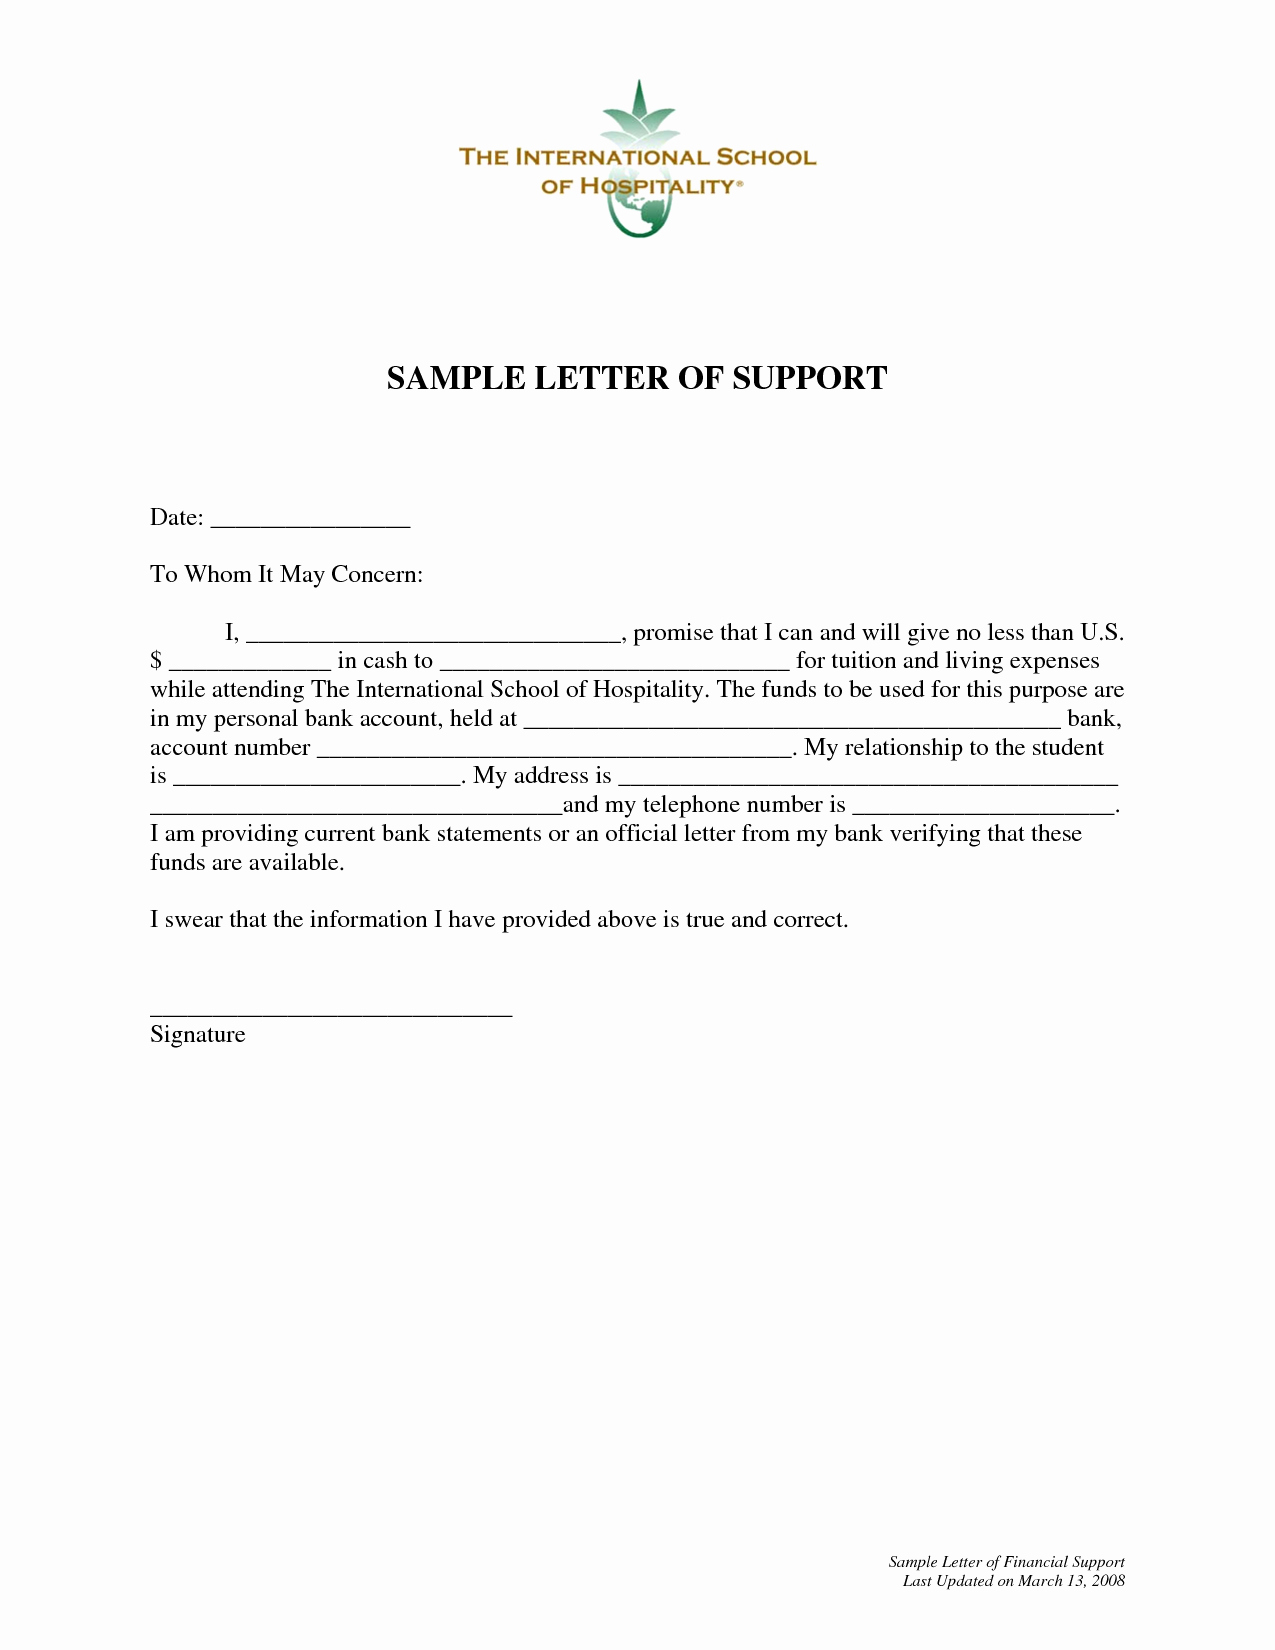 Letters Of Support Template New Letter Support Example for Grant